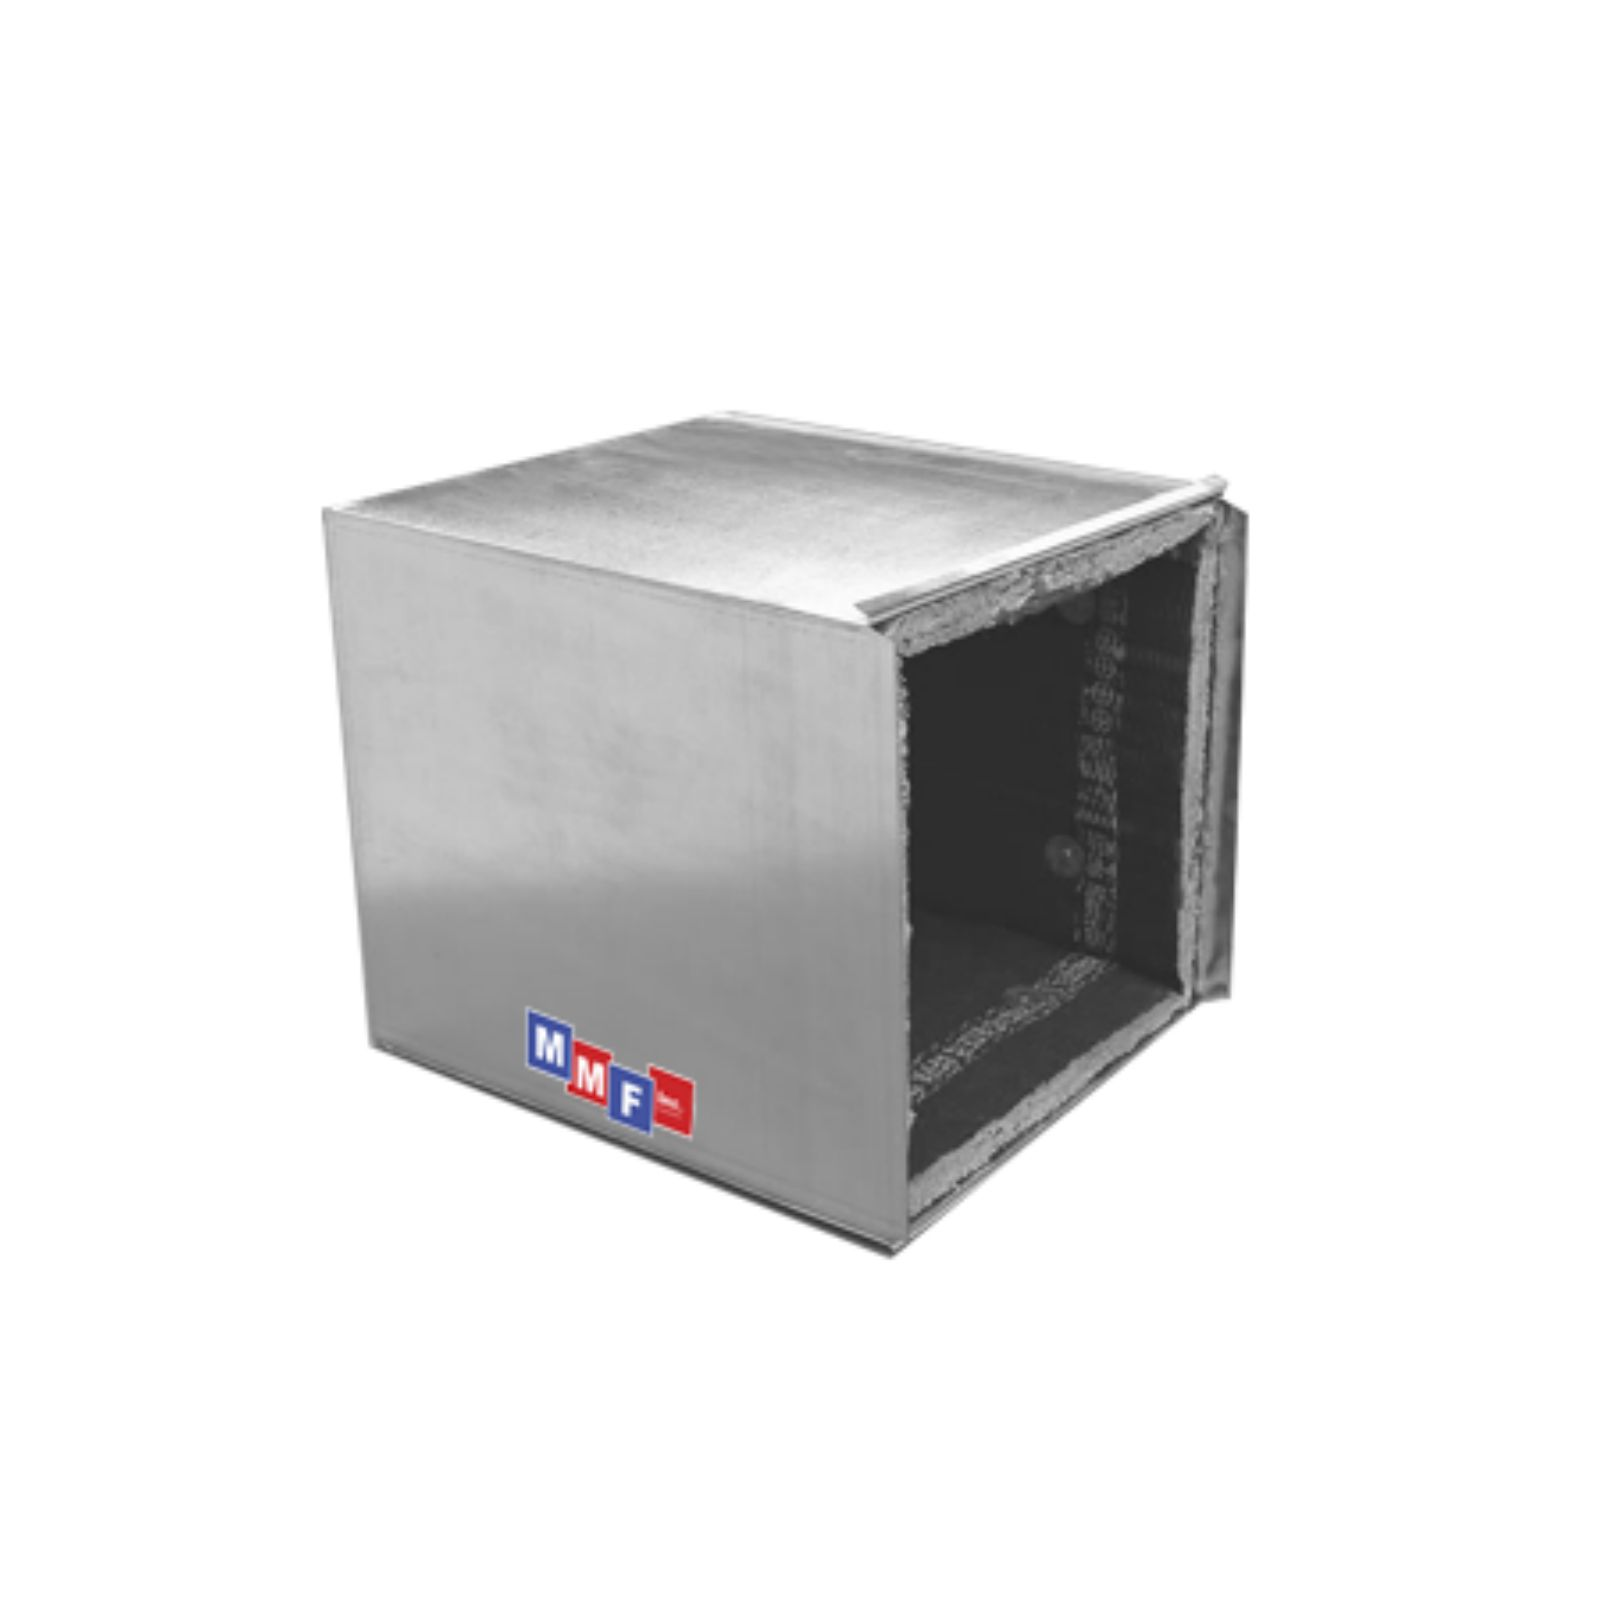 Compare first company hvac system brands & buy online #A52629